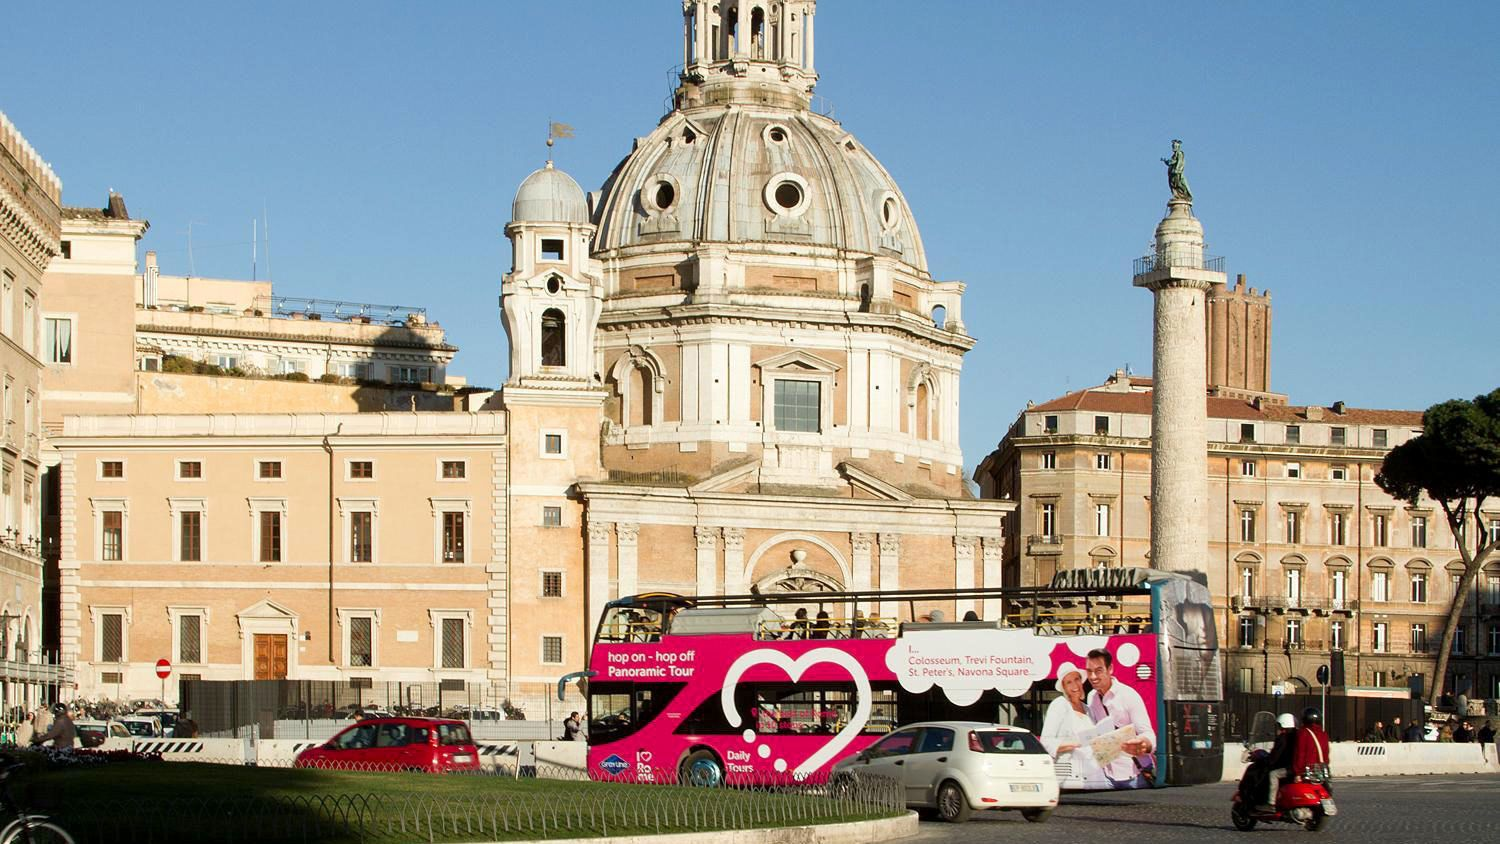 Tour bus outside a cathedral in Rome